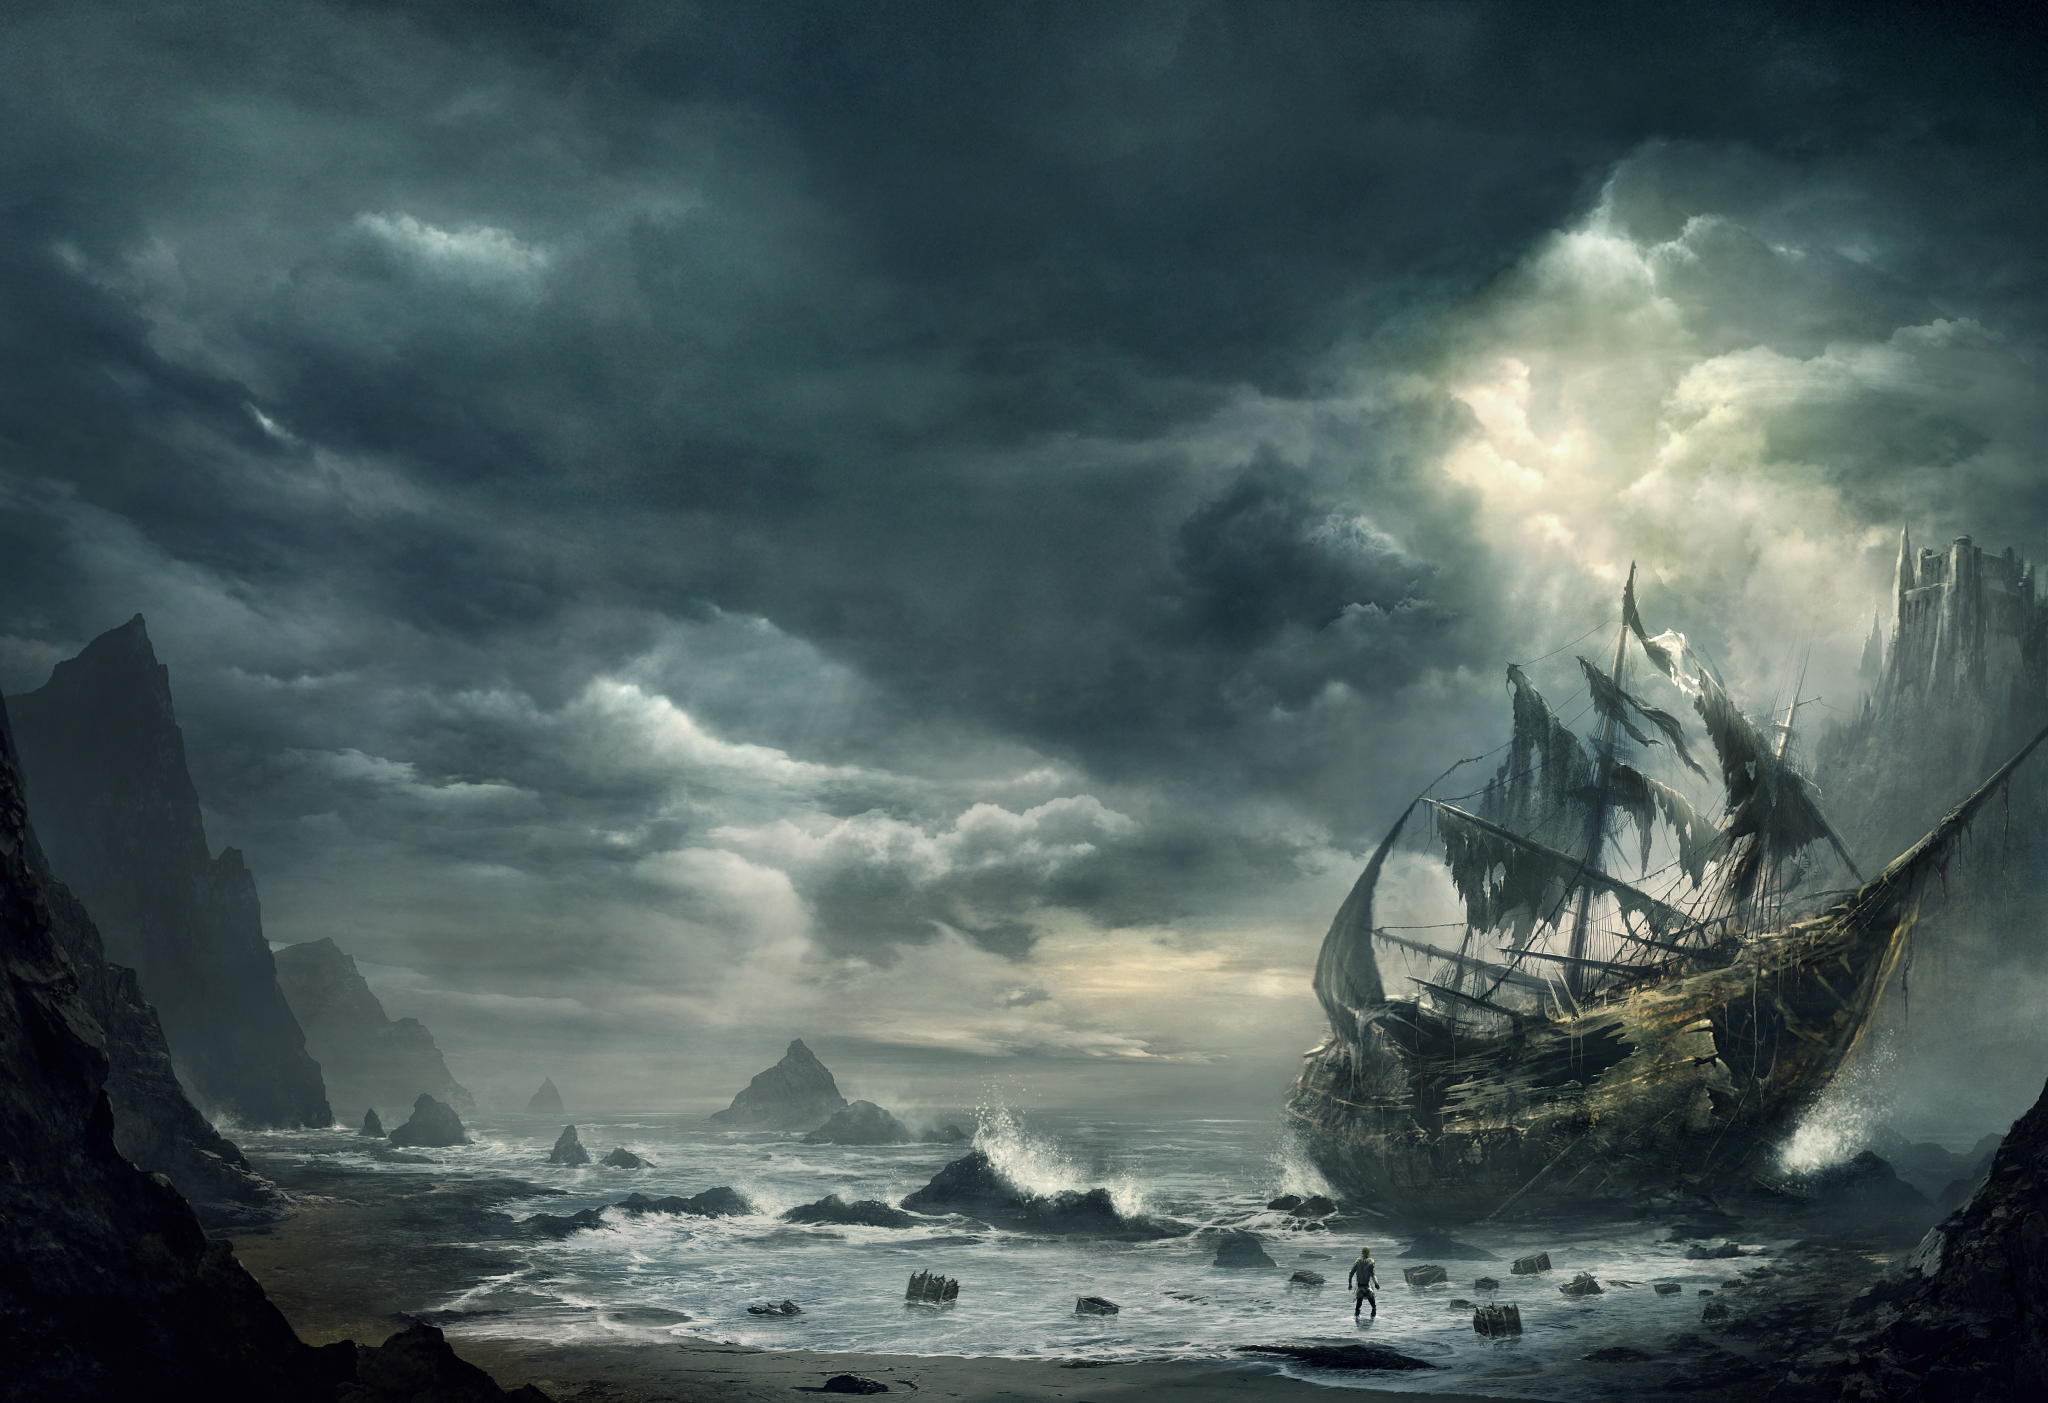 Pirate wallpapers movie hd wallpaper - Pirates hd images ...